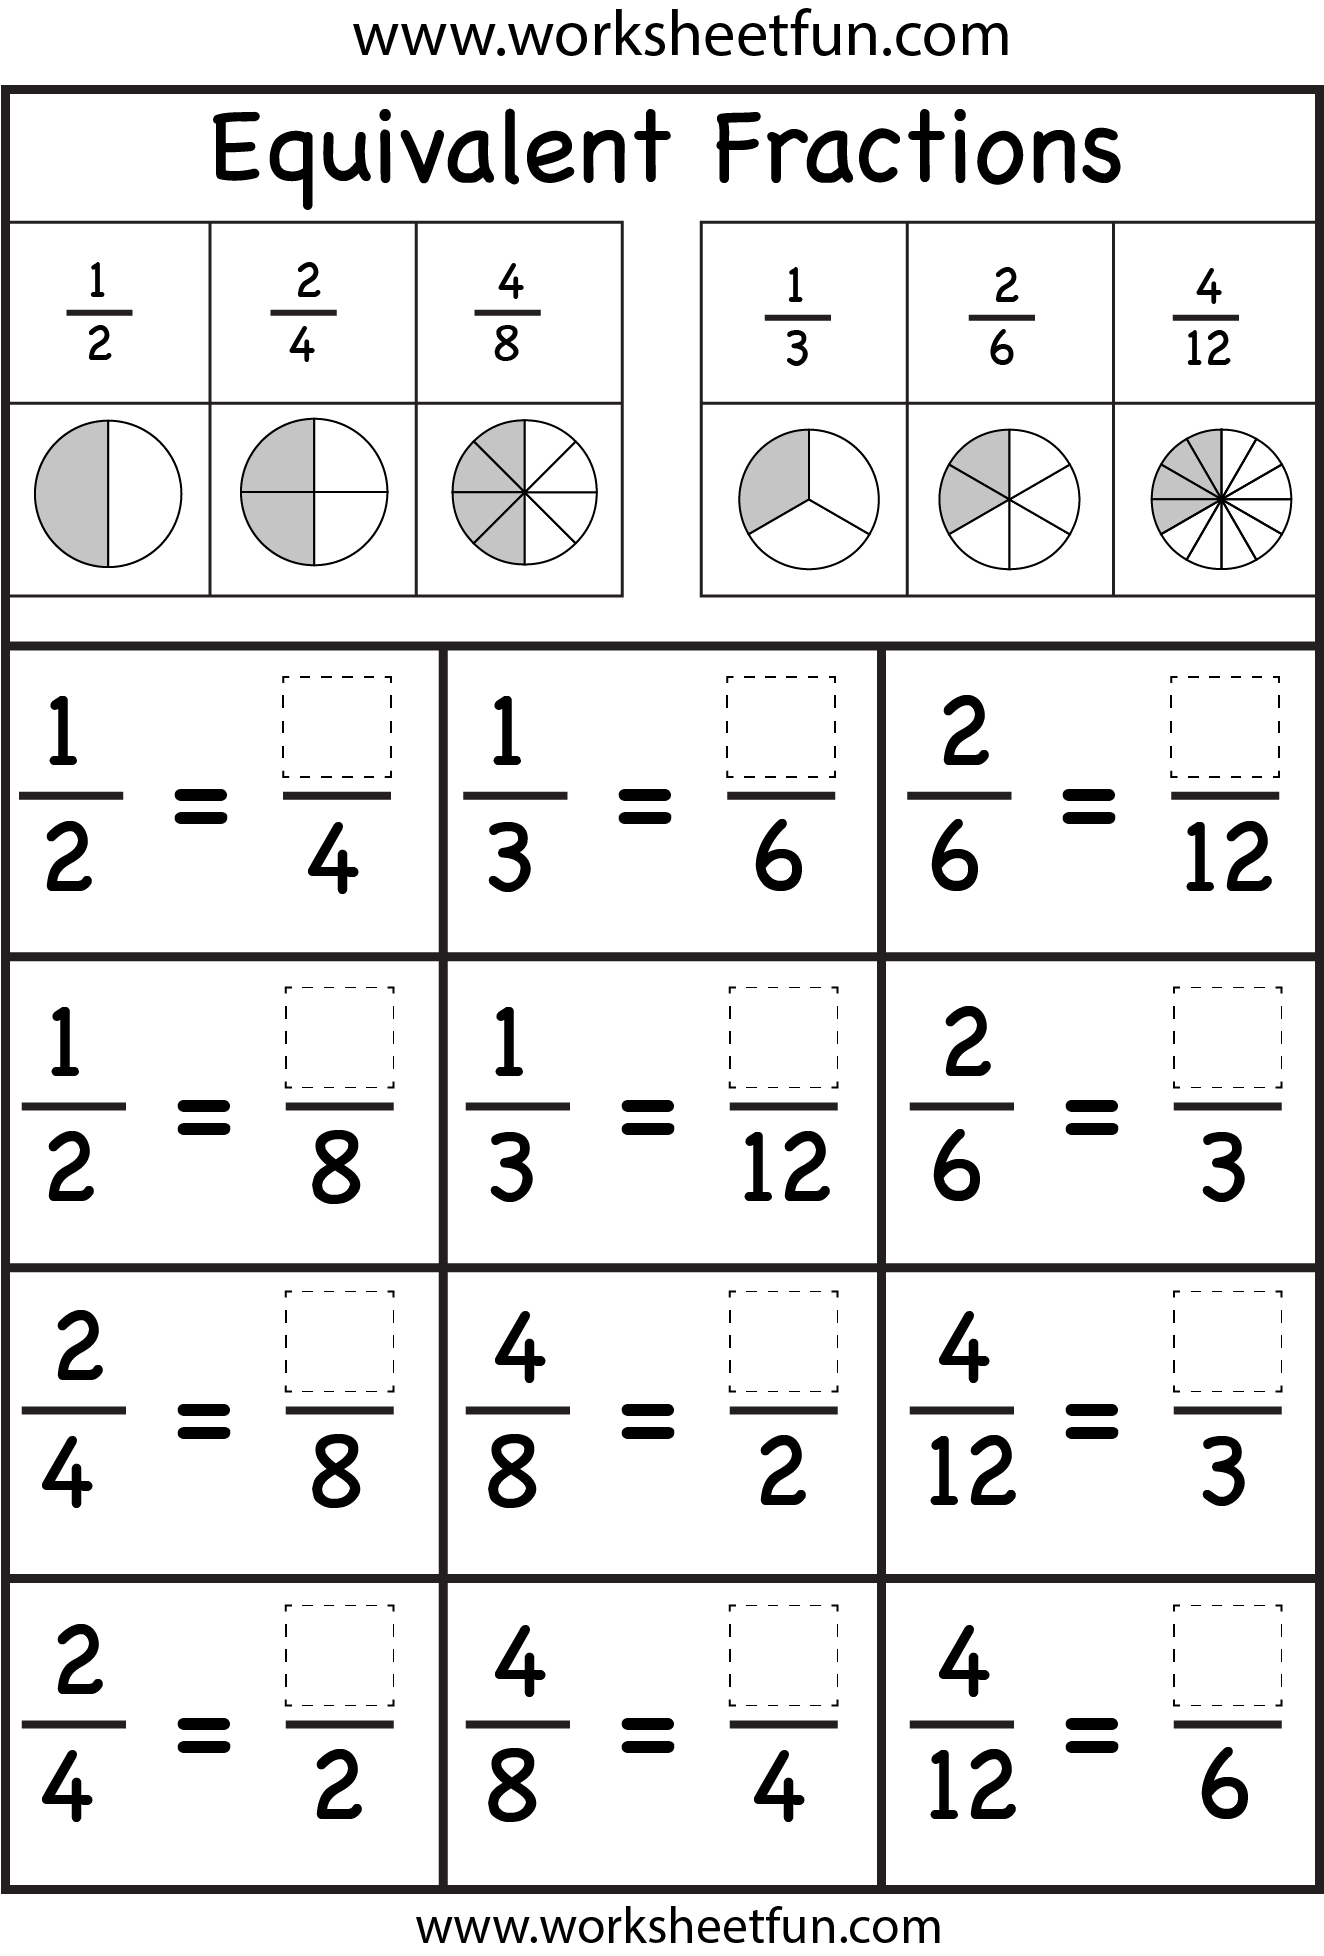 Worksheets Free Fraction Worksheets equivalent fractions fraction worksheets pinterest charts chart worksheets